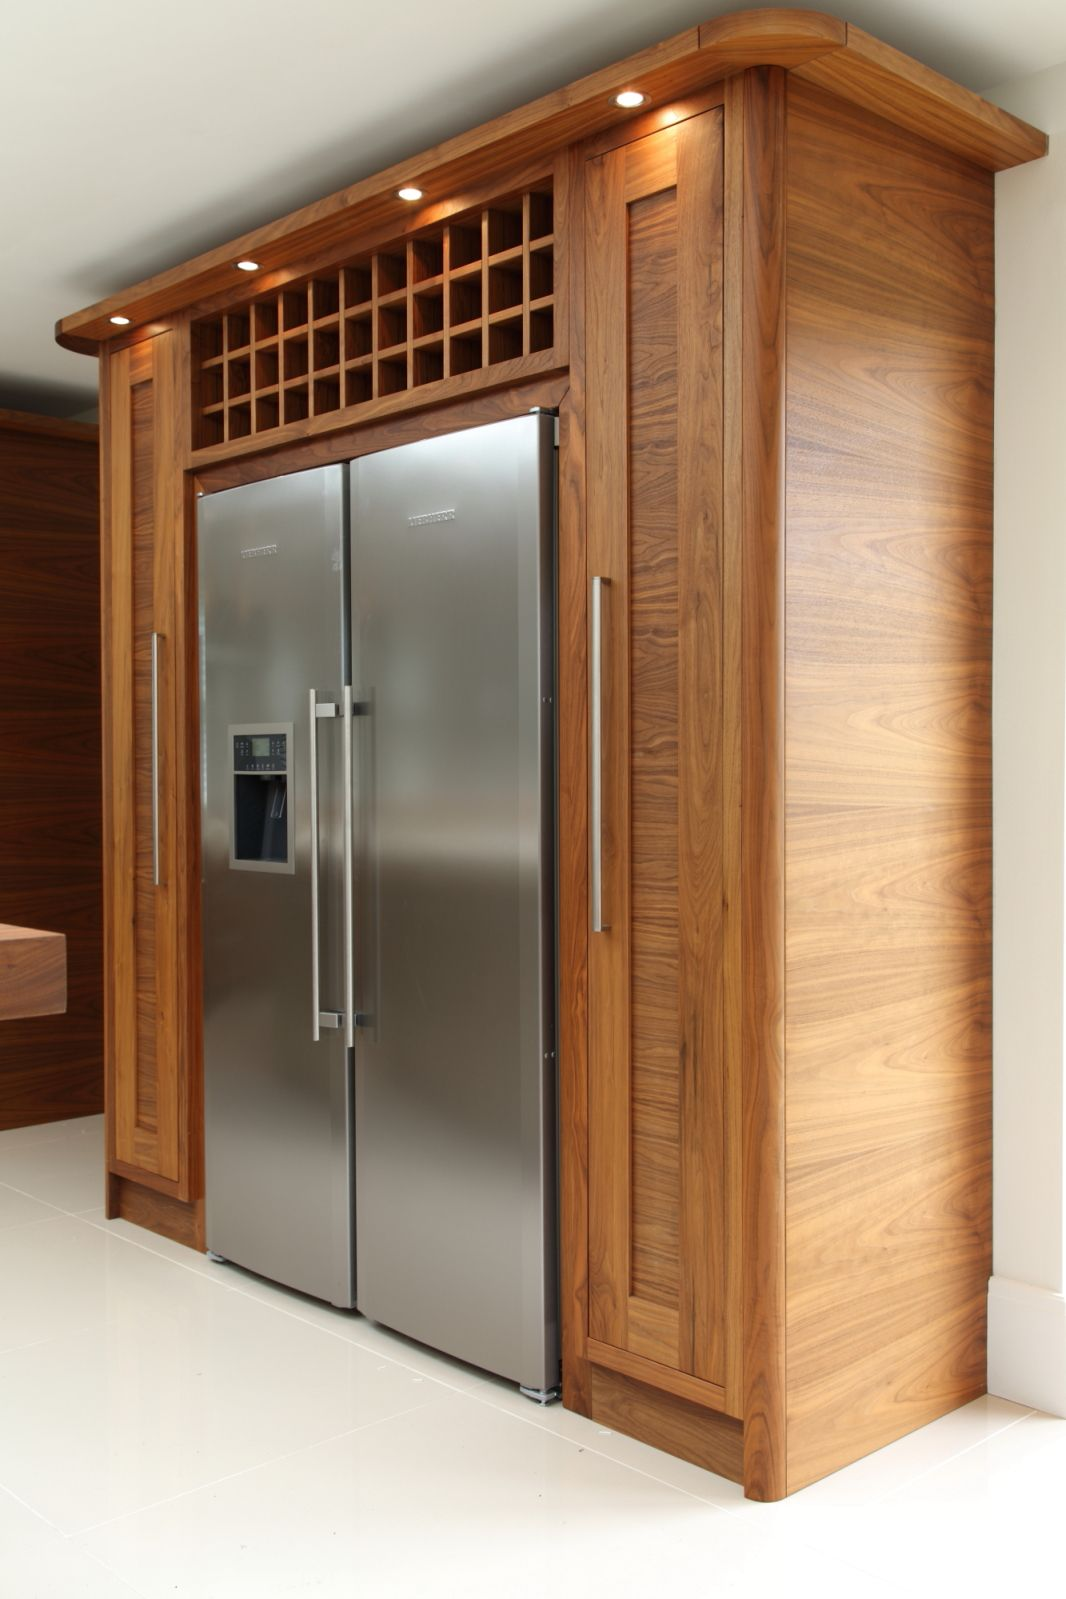 Tall Side By Side Fridge And Freezer With Sides Of Glass